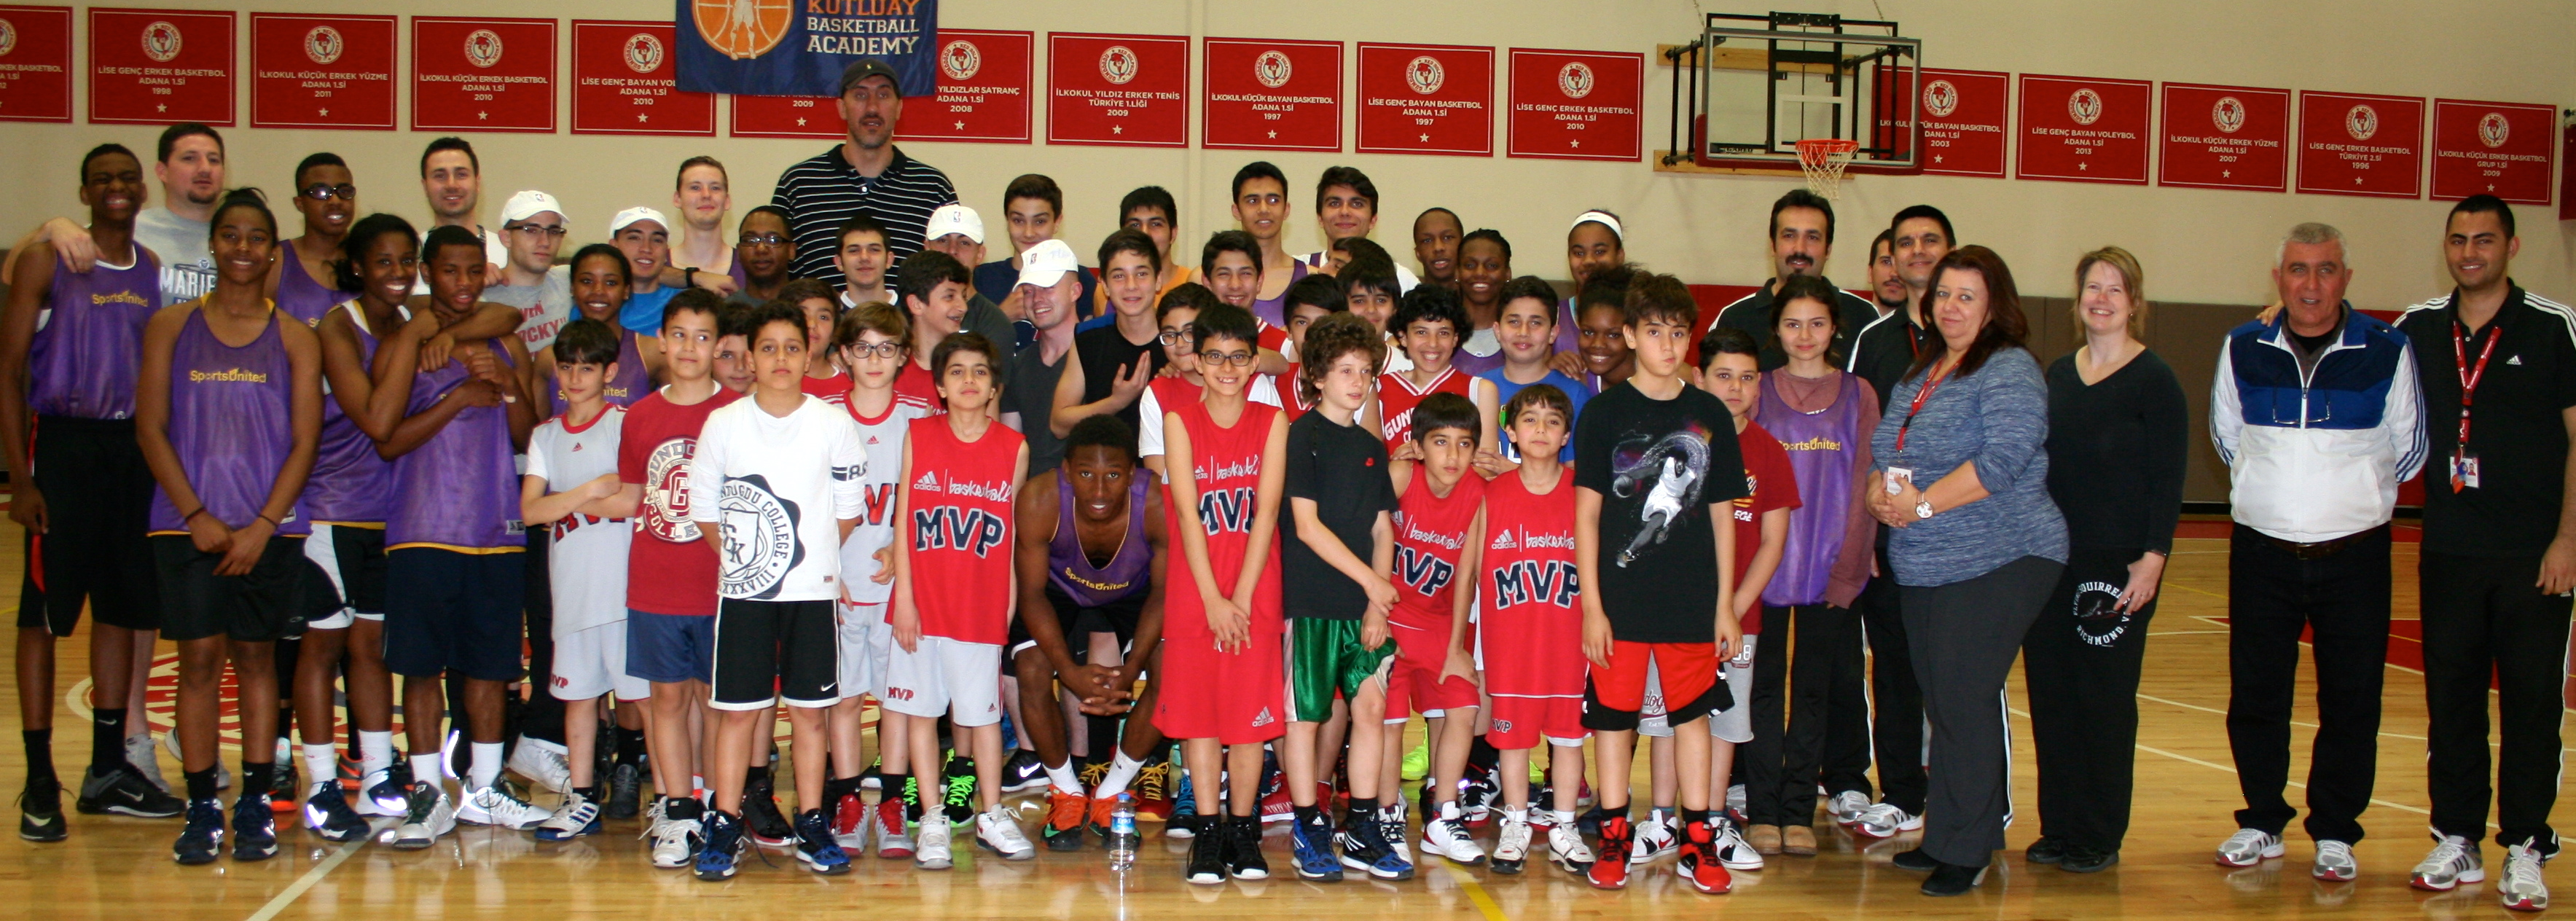 American and Turkish participants at the Gundogdu College in Adana share a photo opportunity after practices and clinics